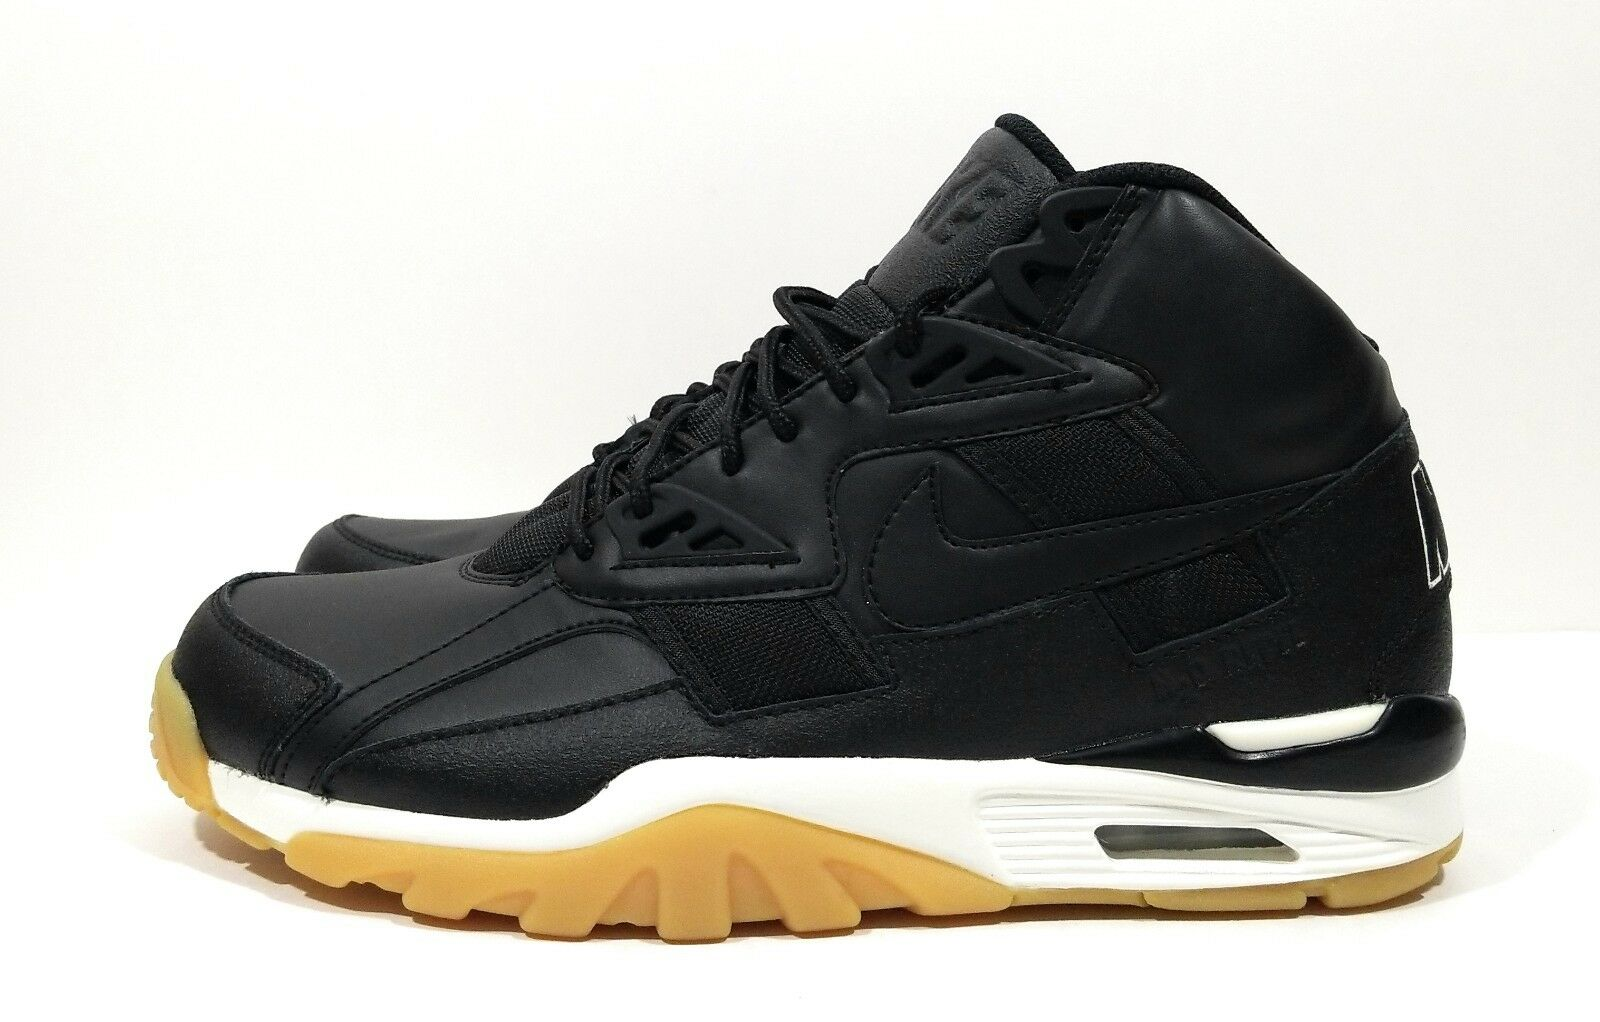 Nike Air Trainer SC Shoes Winter Bo Jackson Mens Shoes SC Black Gum Sole Size 9 1ee599